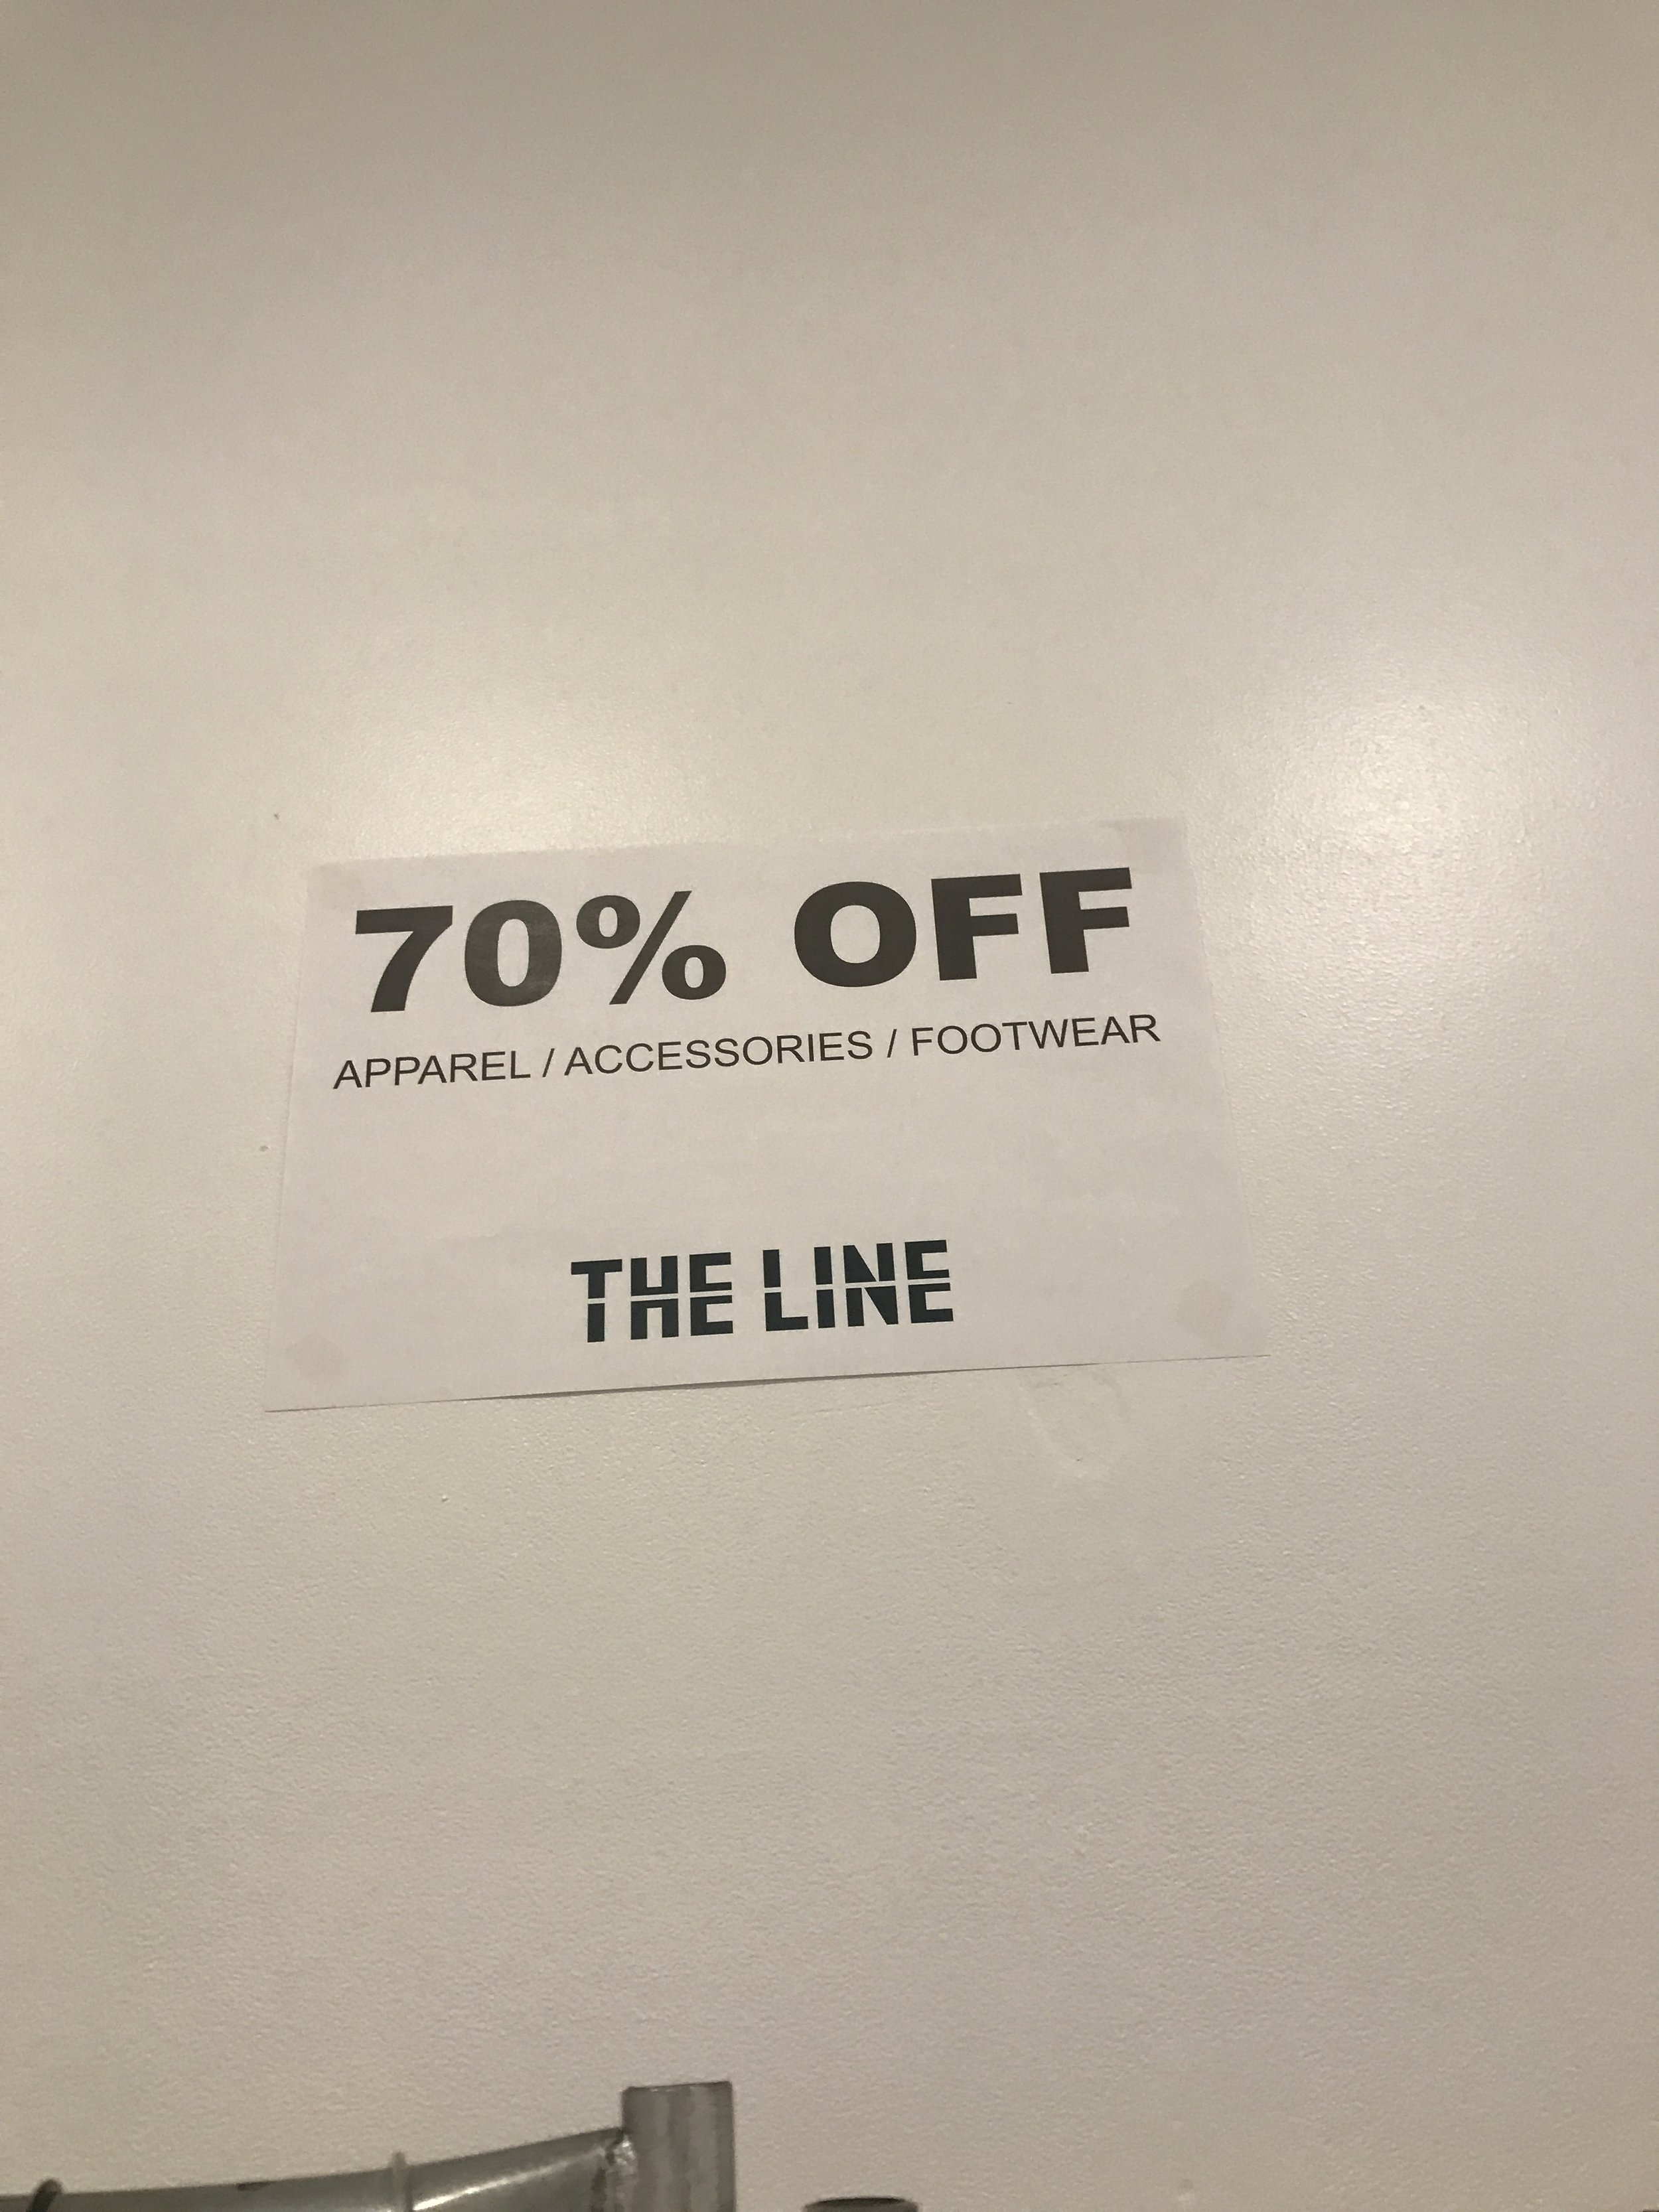 All clothing, accessories, and footwear are 70% off